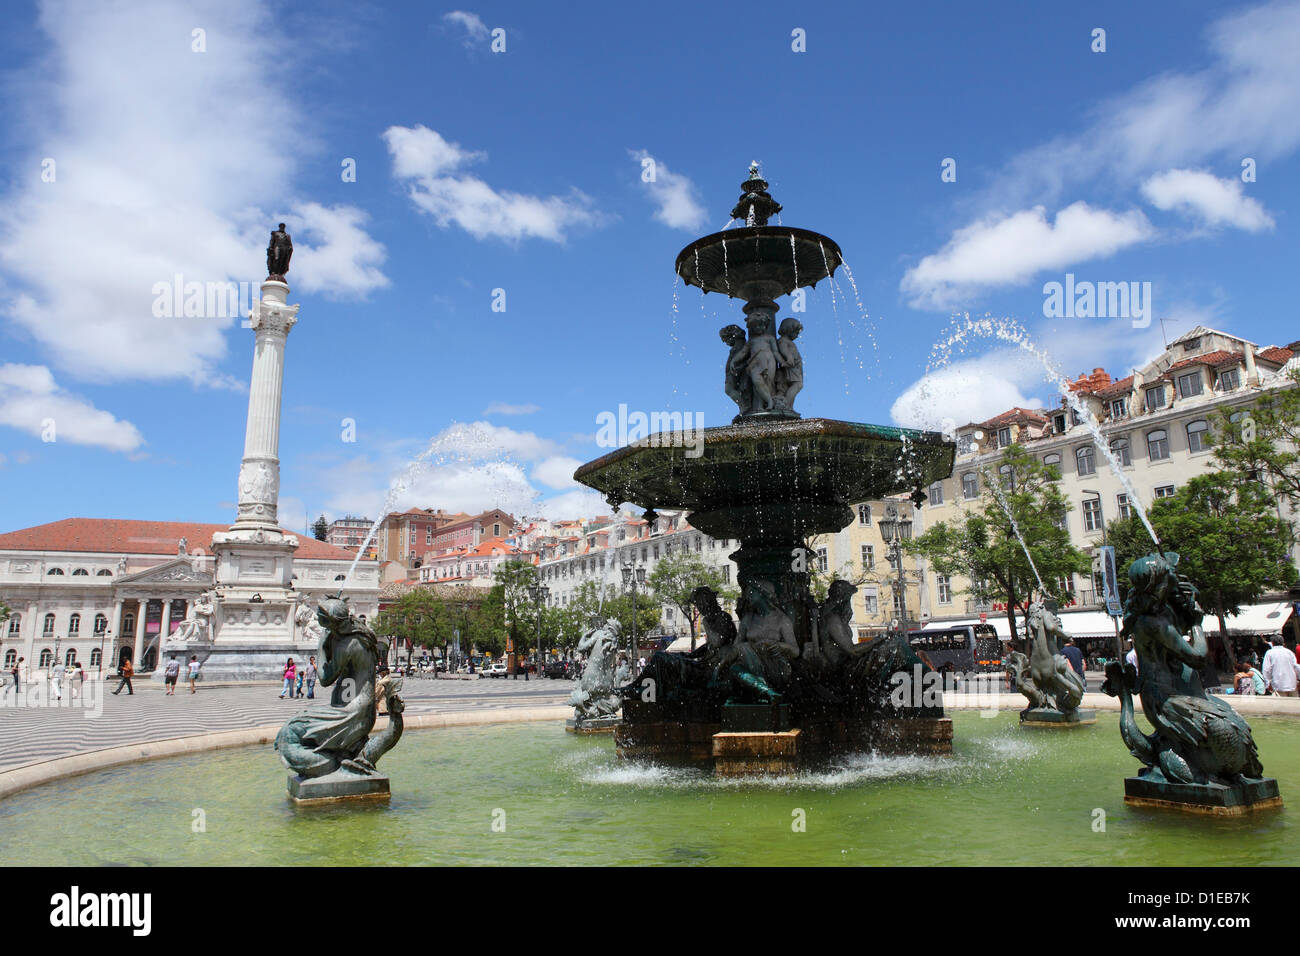 The Rossio Fountain on Praca Dom Pedro IV public square in the central Baixa district, Lisbon, Portugal, Europe - Stock Image